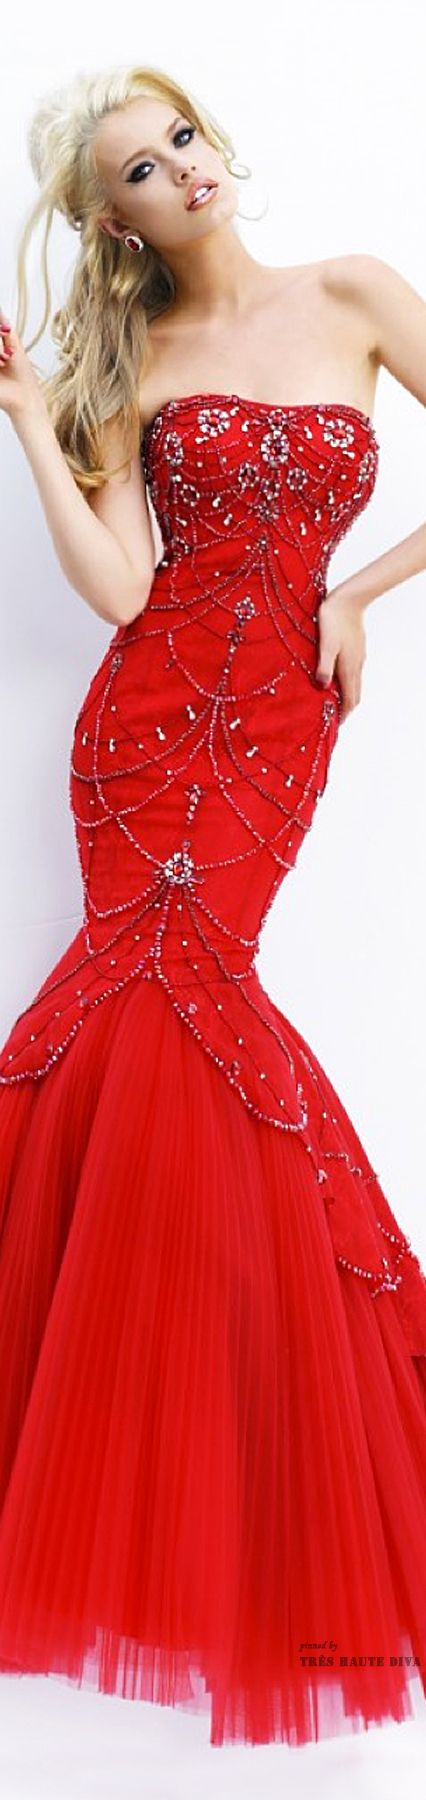 Class never goes out of style. - Sherri Hill Spring 2015 Red Dress...